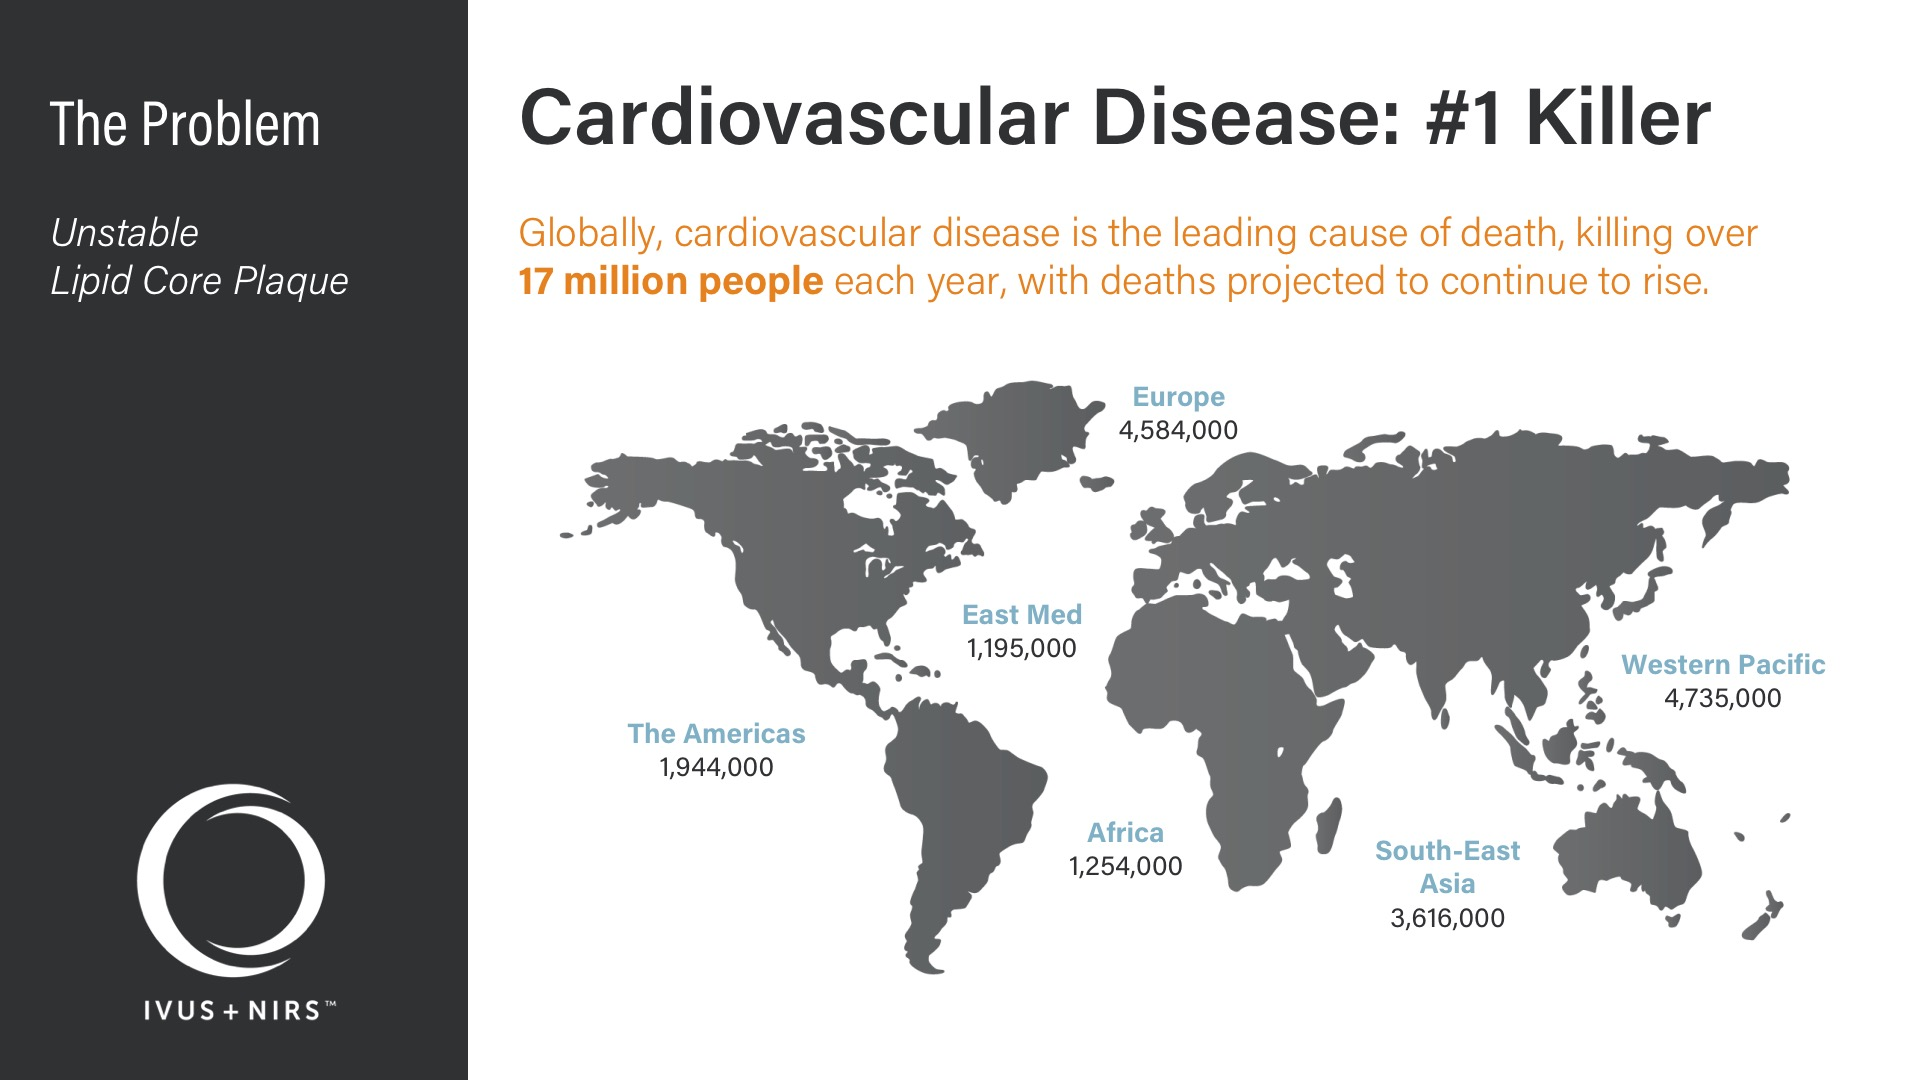 Infraredx Corporate Deck - Problem - Cardiovascular Disease: #1 Global Killer - Kills over 17 million people each year